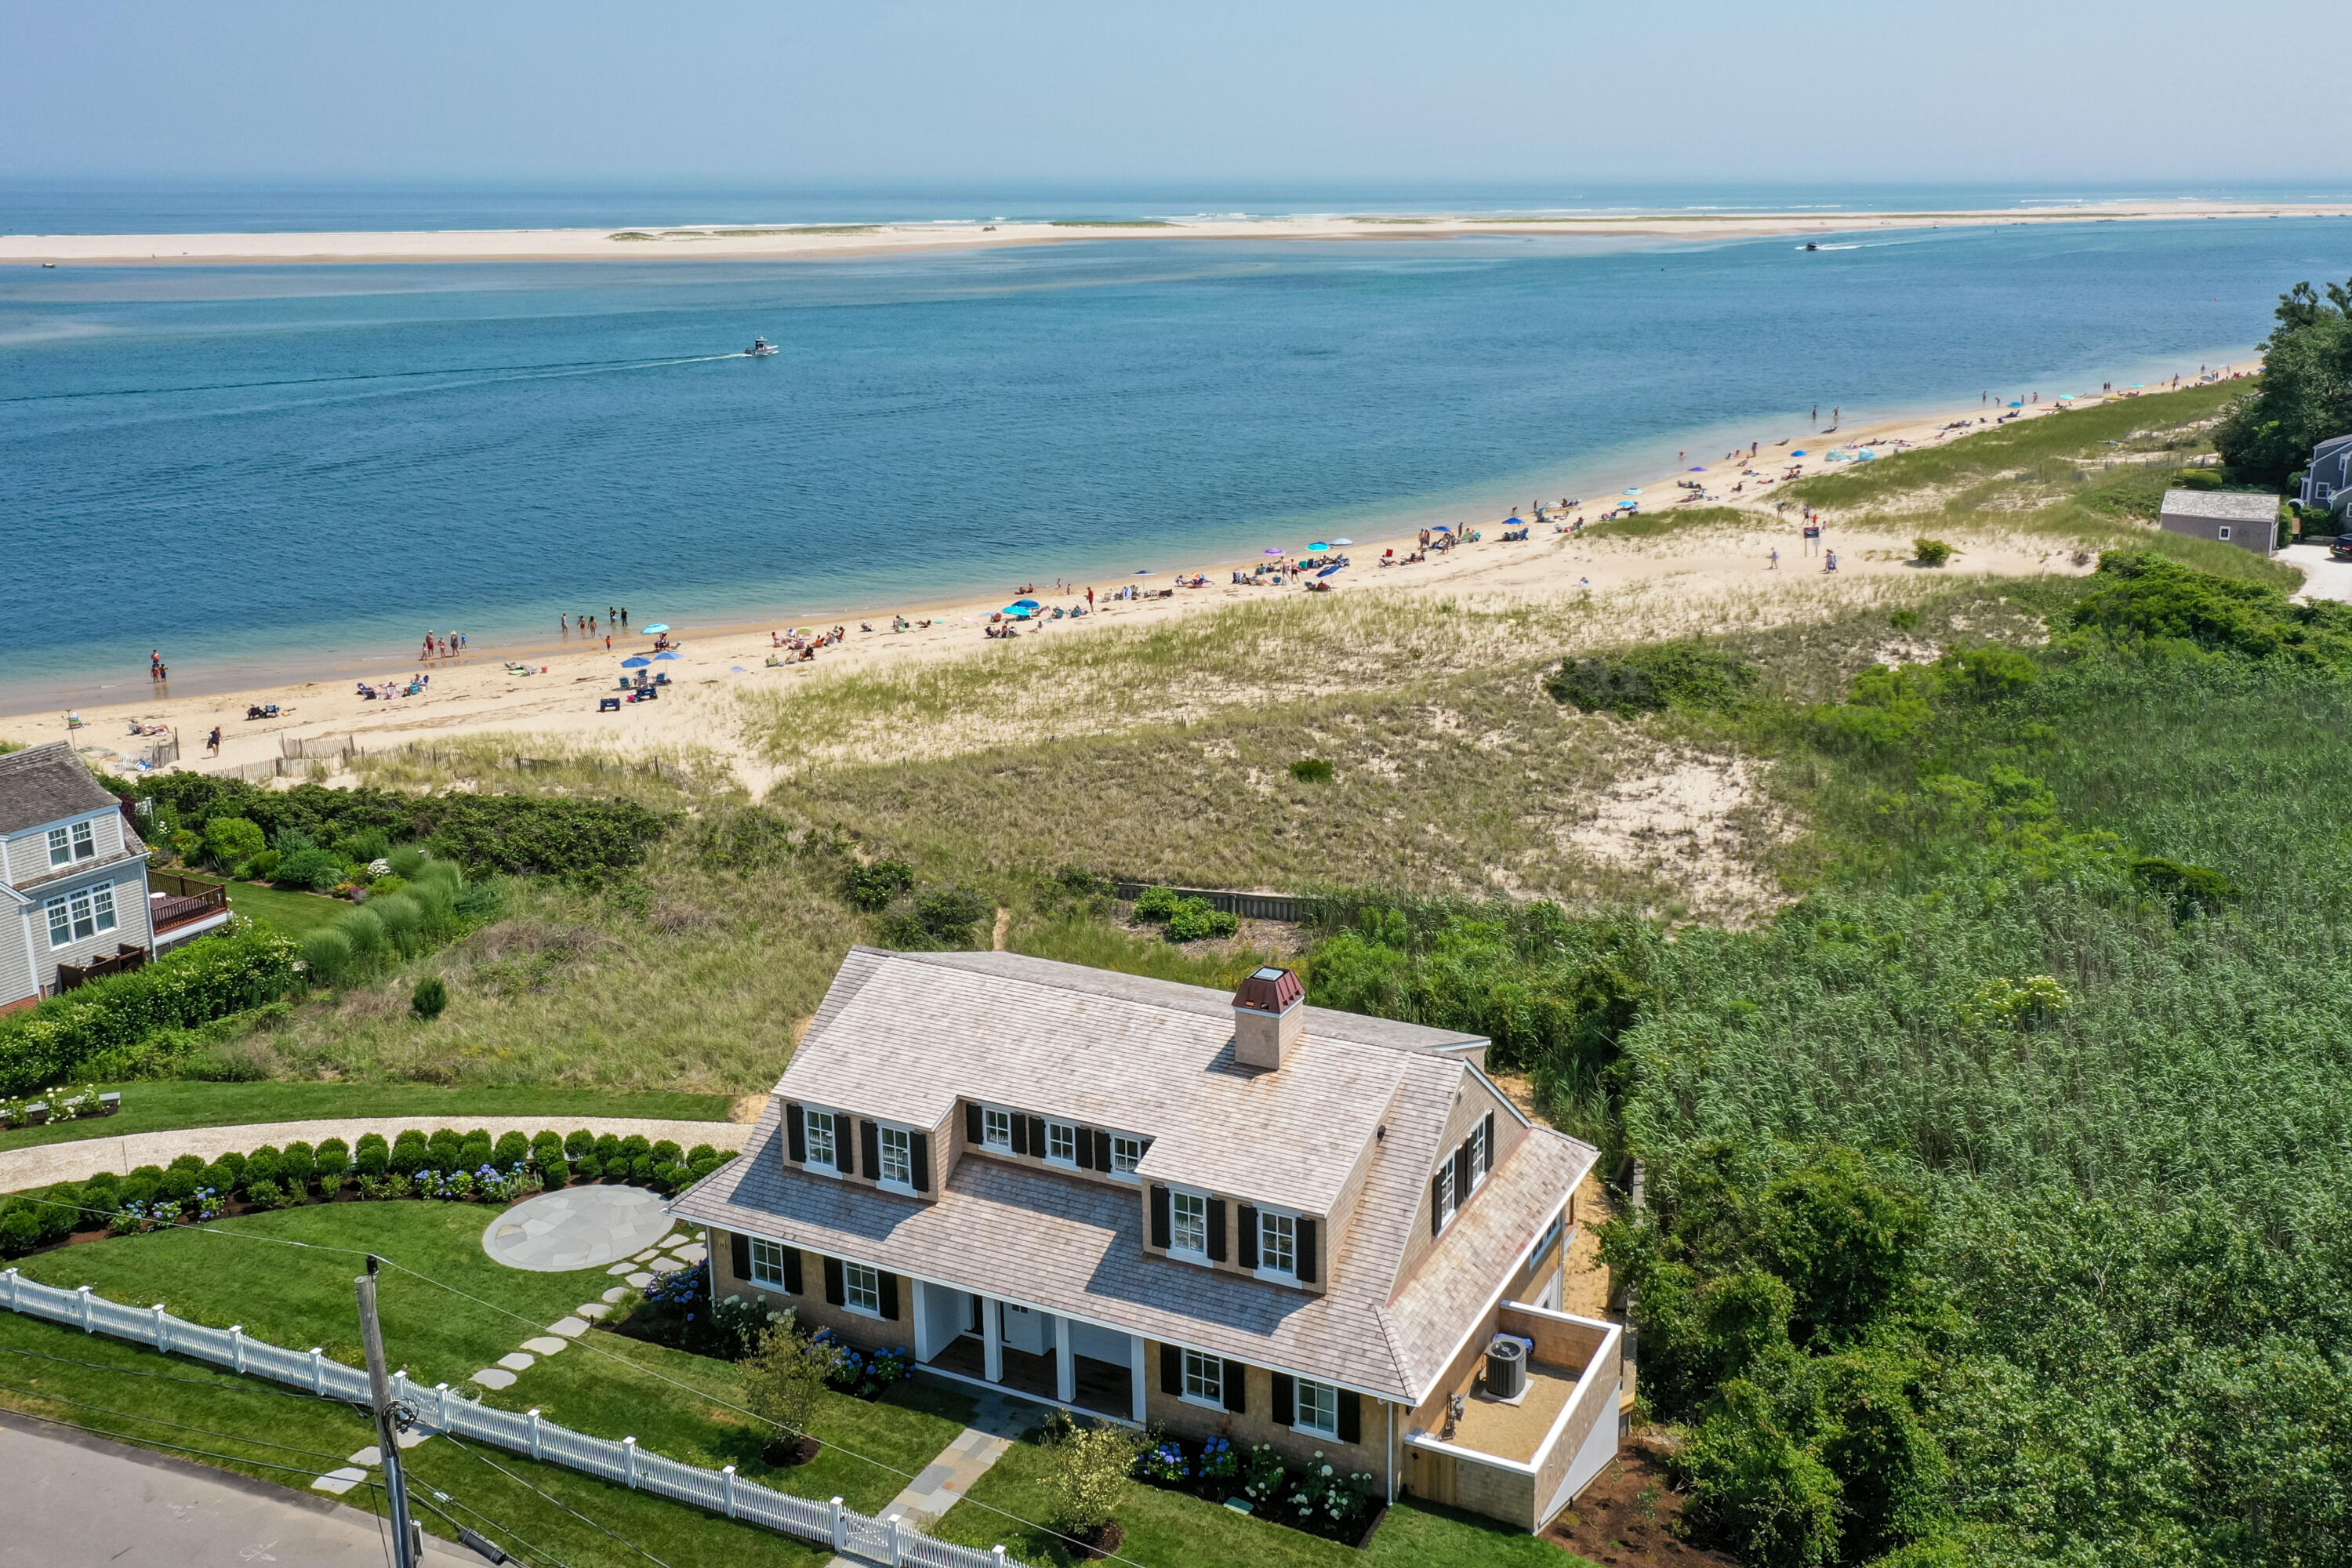 34 Holway Street, Chatham MA, 02633 sales details